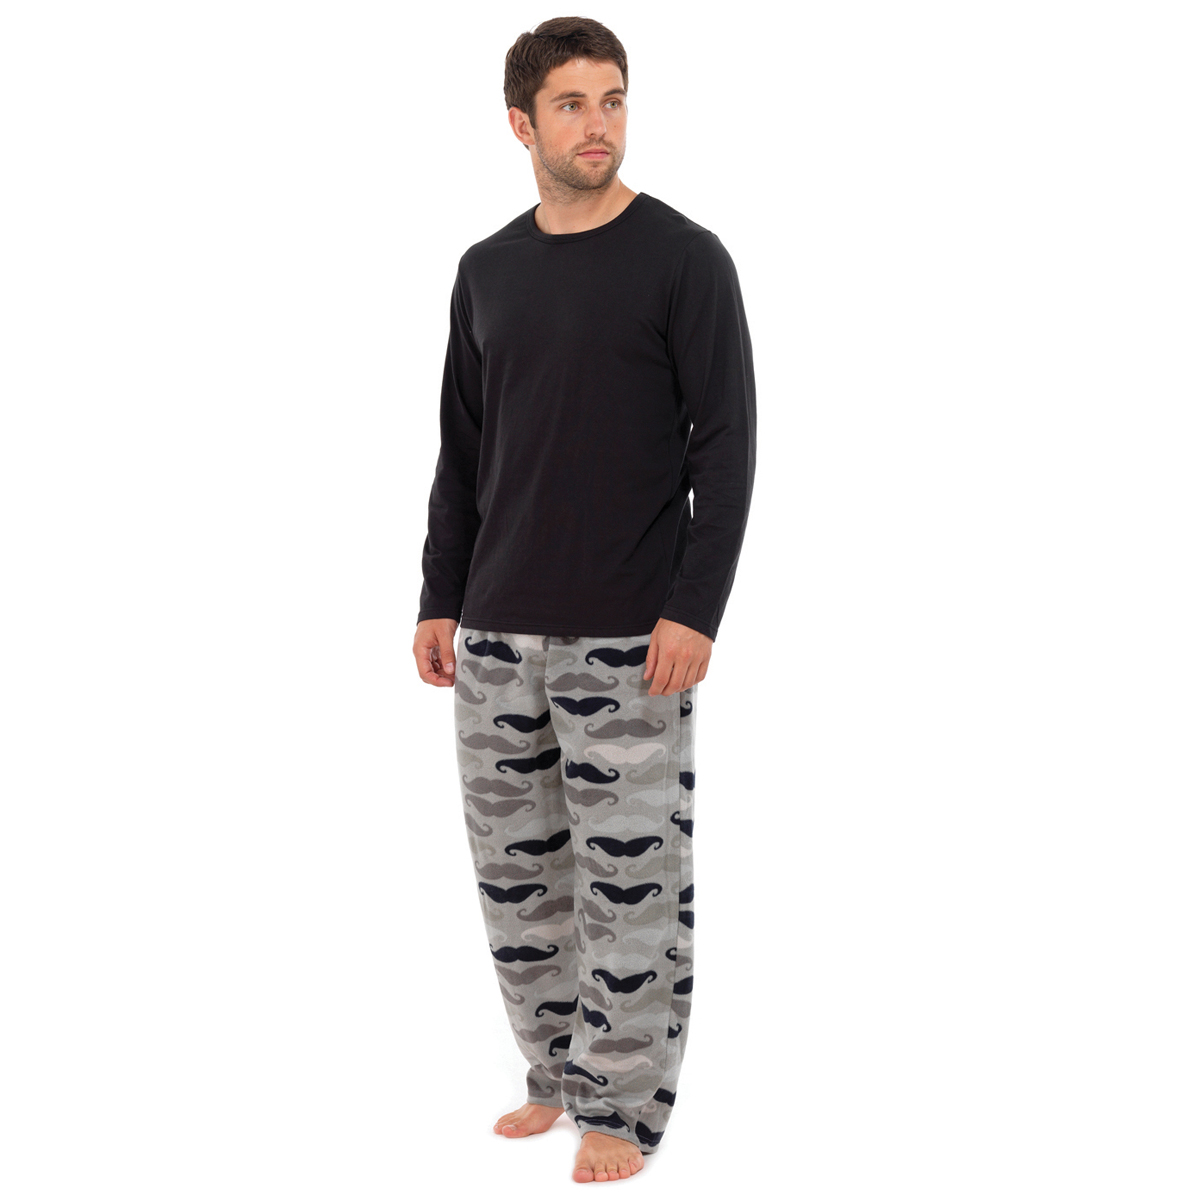 Mens Moustache PJ Print Fleece Pyjamas Sets Night Wear PJ ...